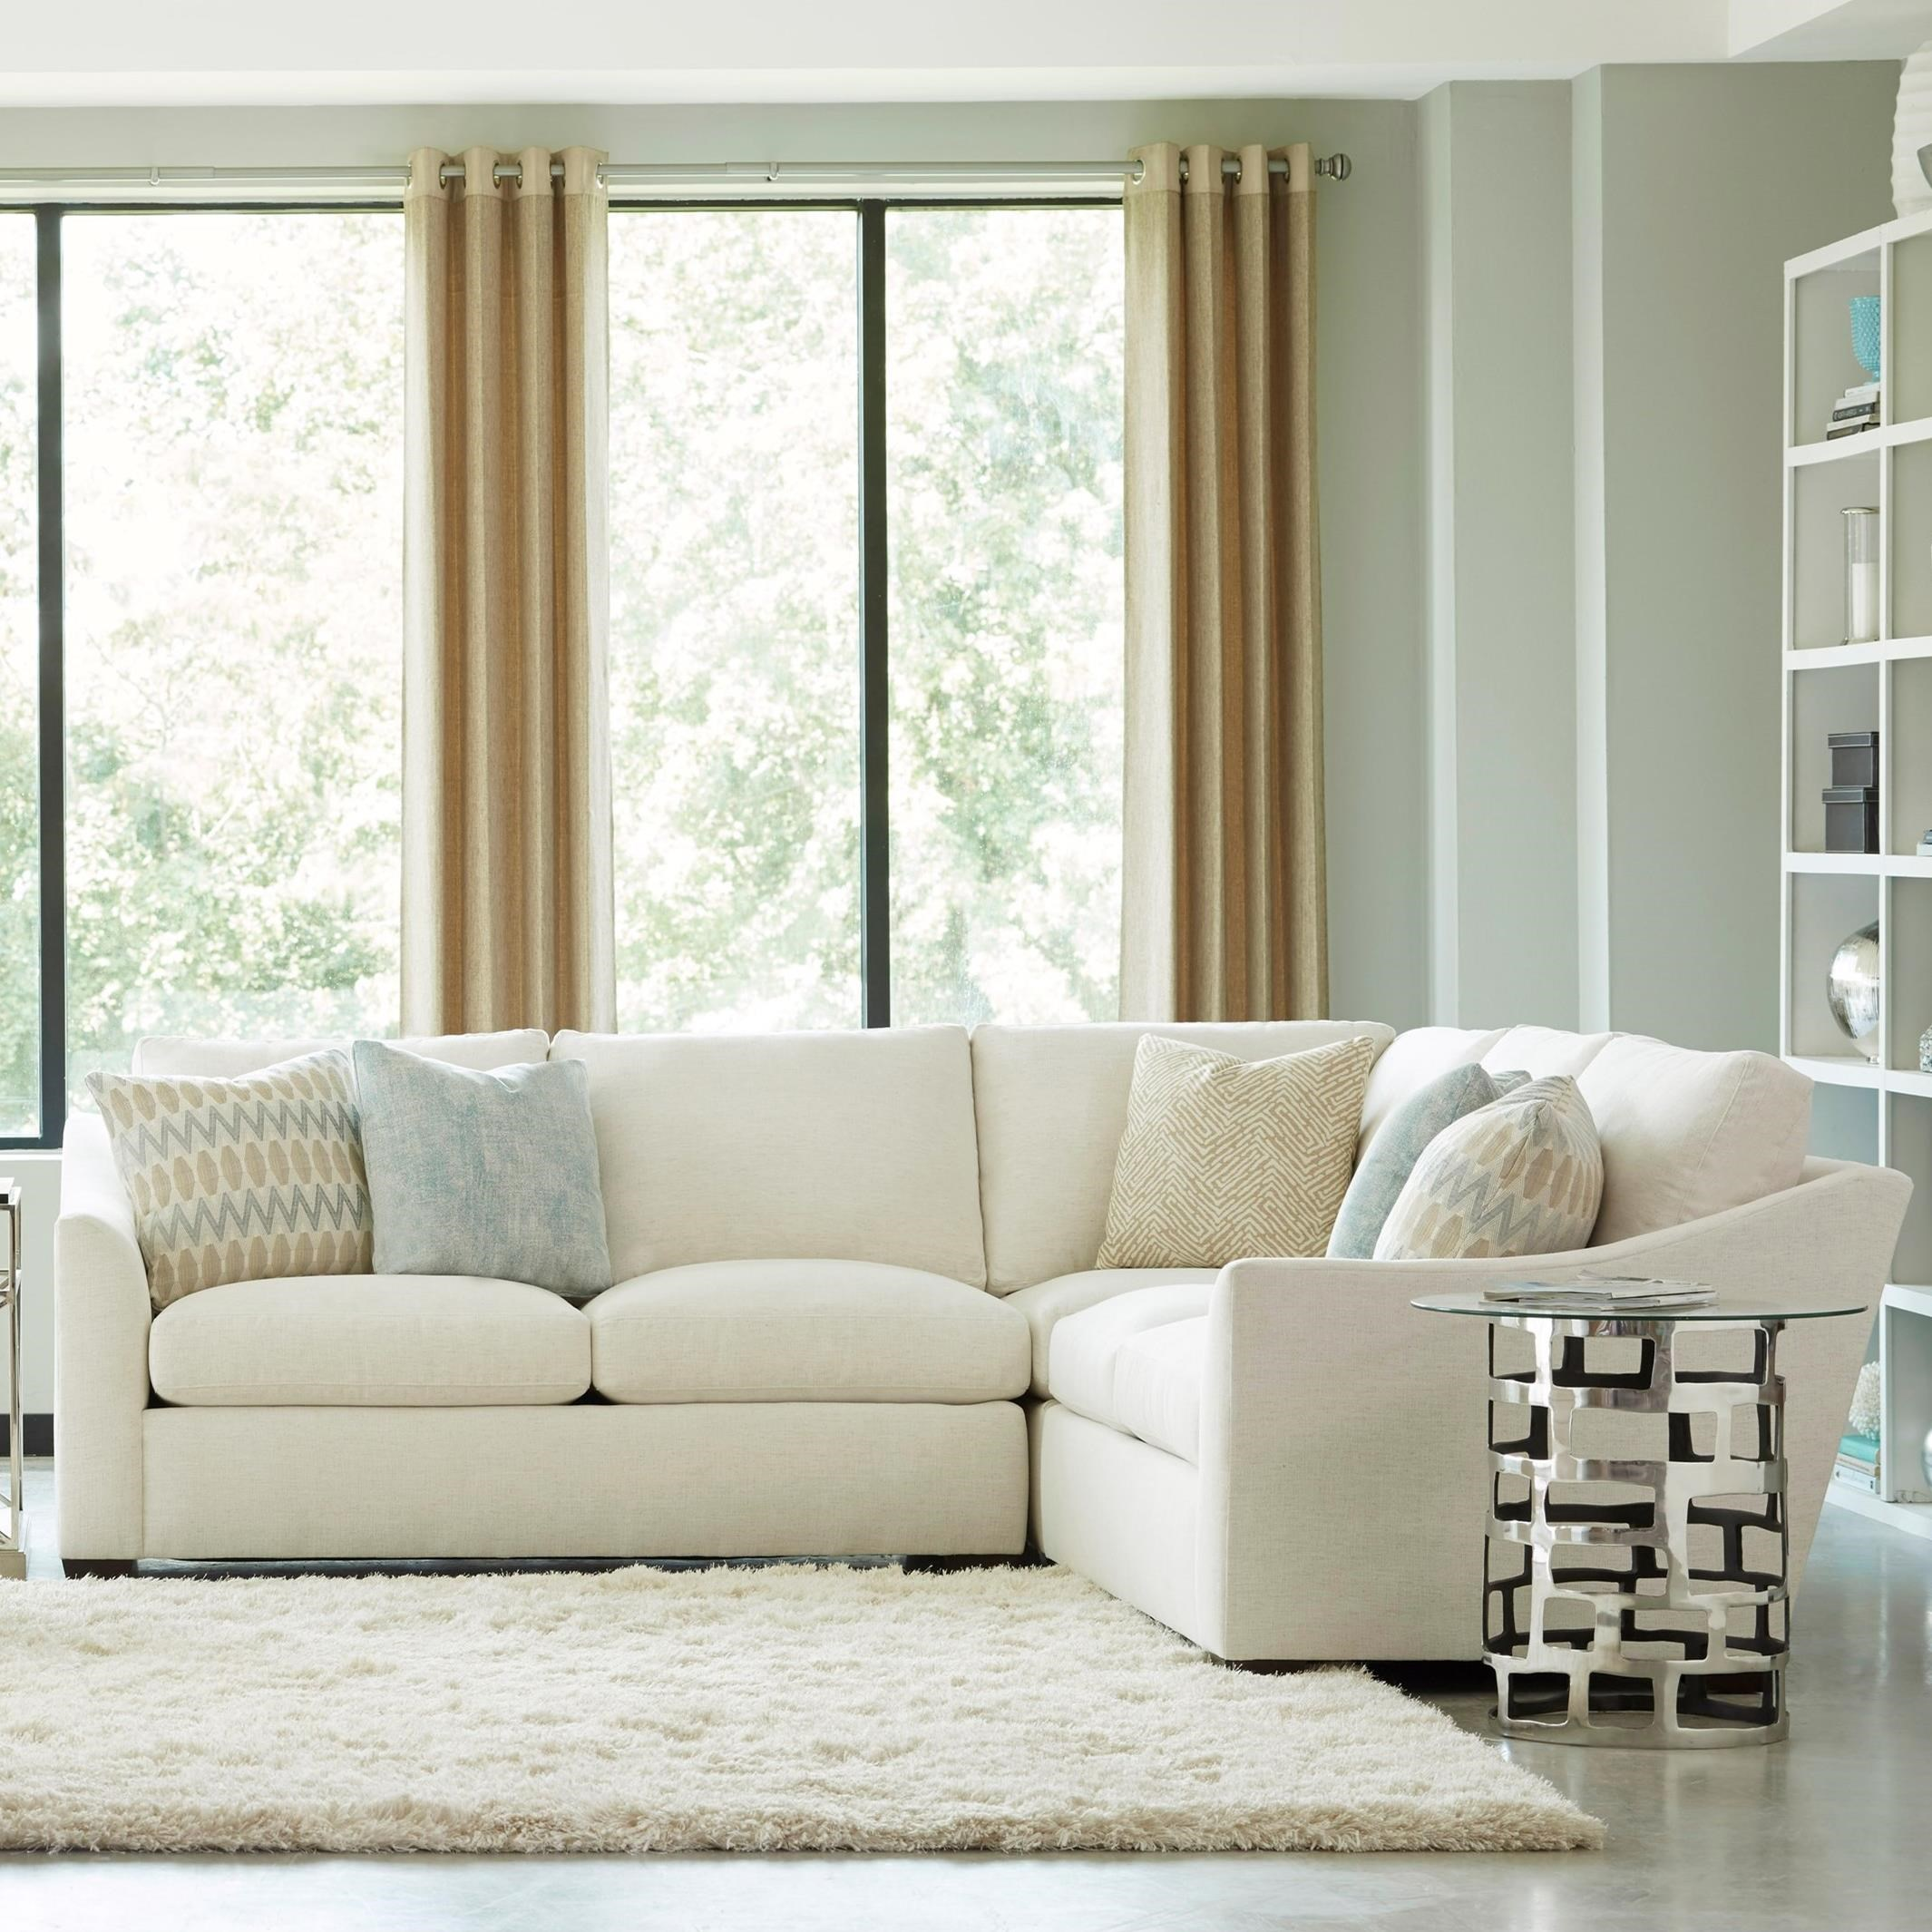 Huntington House Plush 3 Pc Sectional w/ Flare Arms - Item Number: 2300-43+31+42-PURE-1471-88